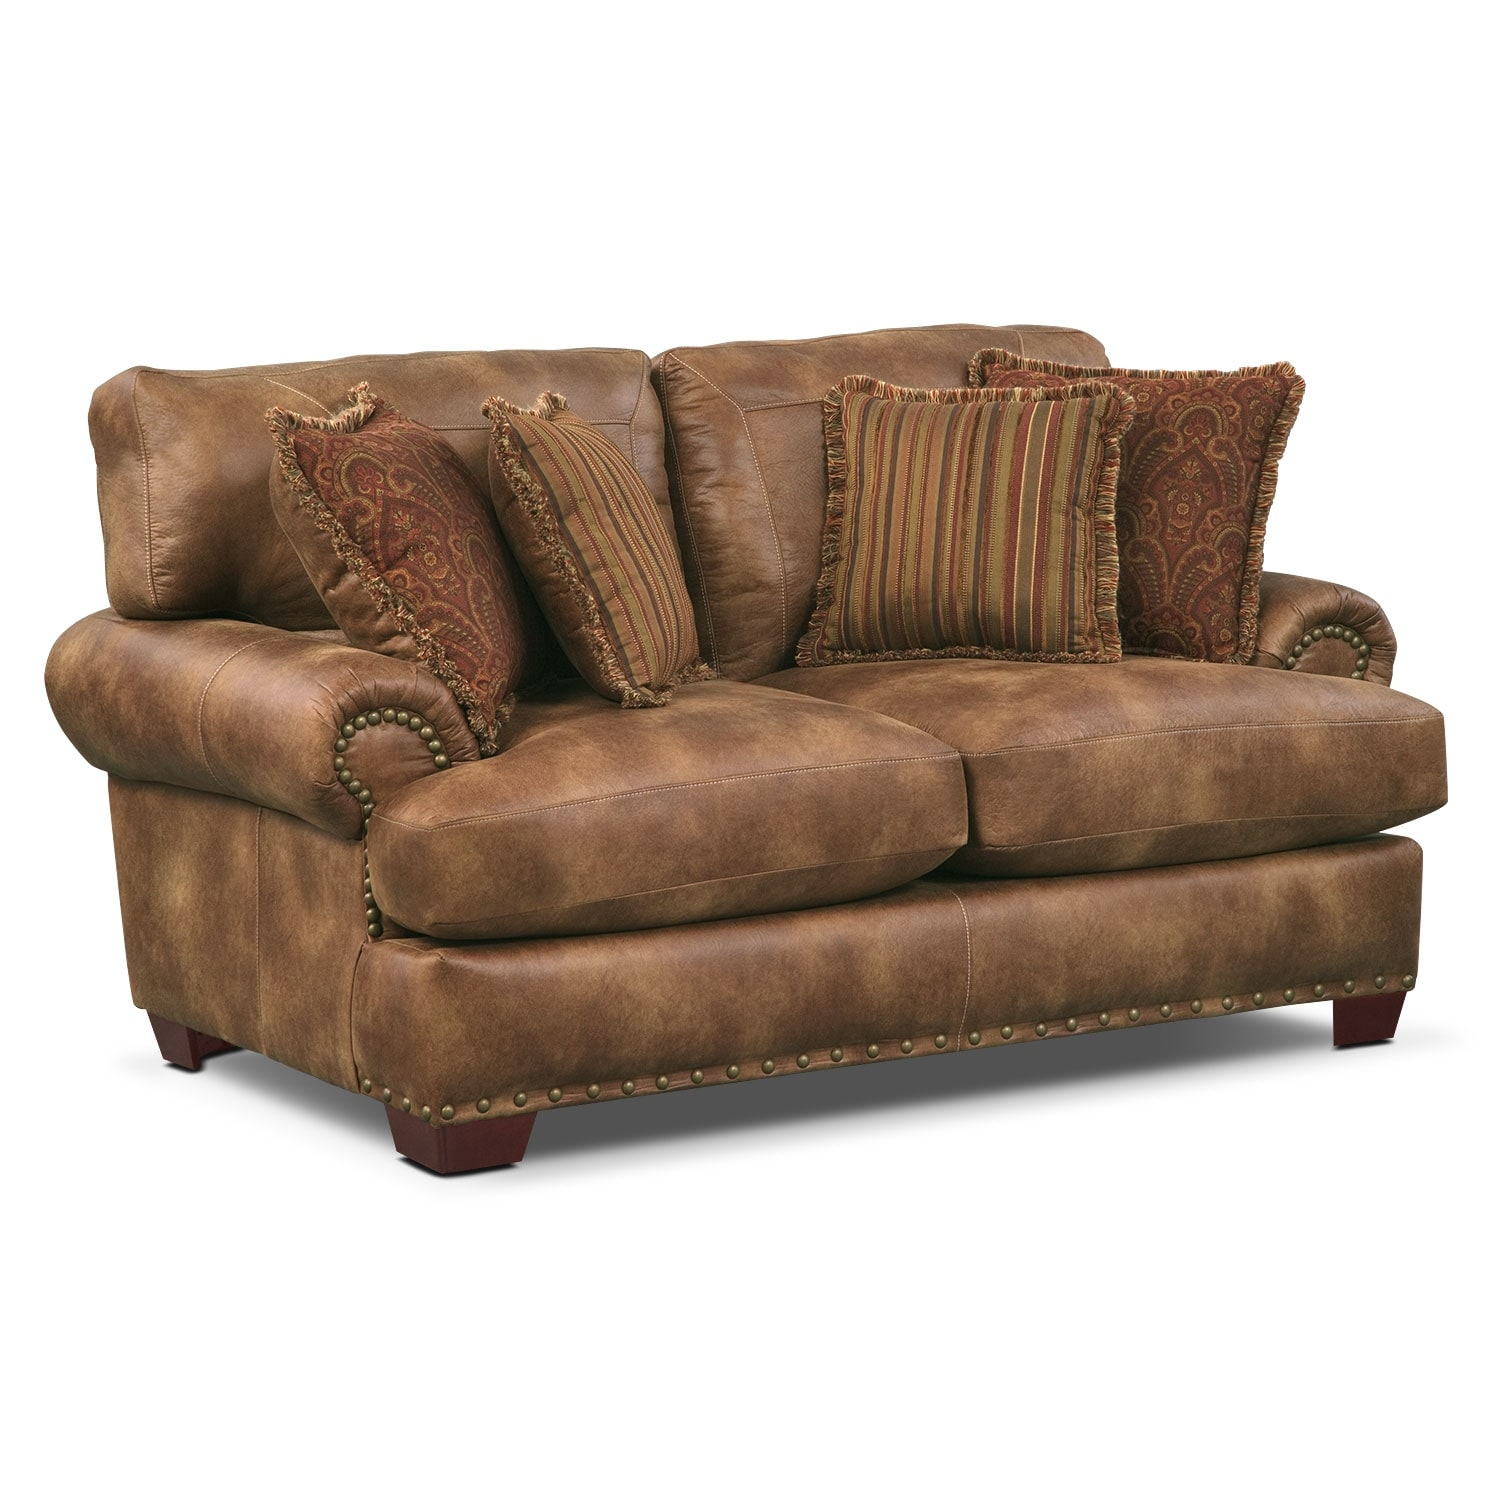 Living Room Furniture - Burlington Loveseat - Cognac